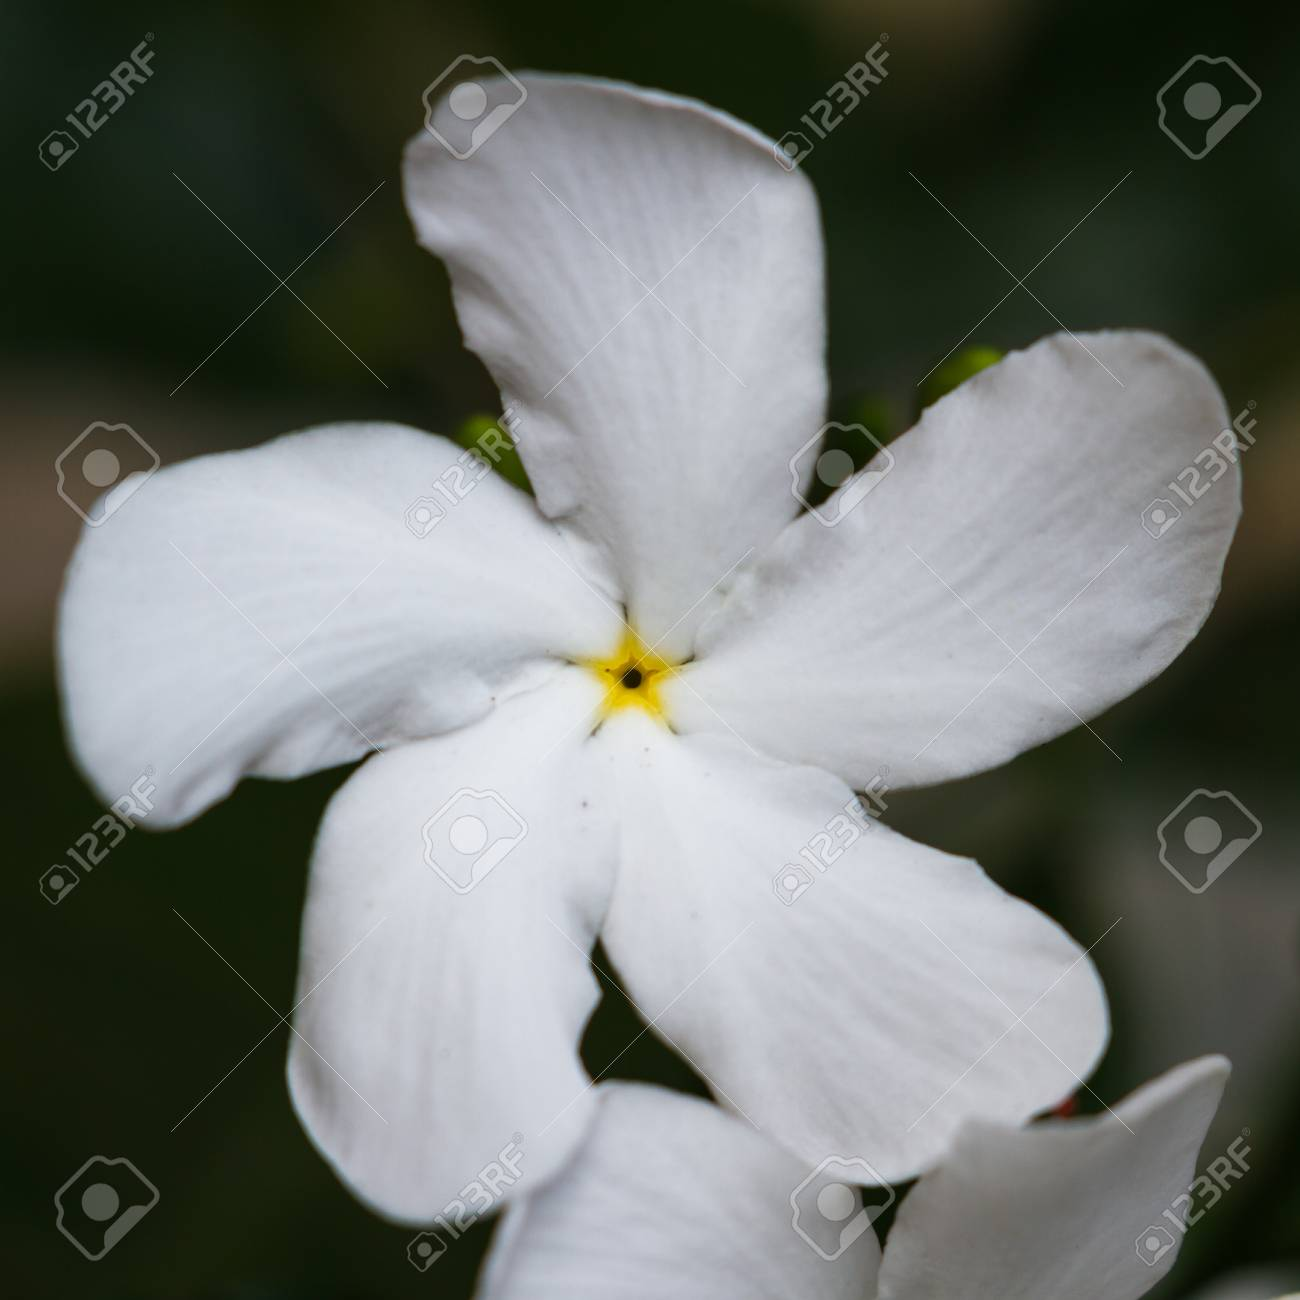 Close Up Of An Interesting White Flower With 5 Petals In A Swirl